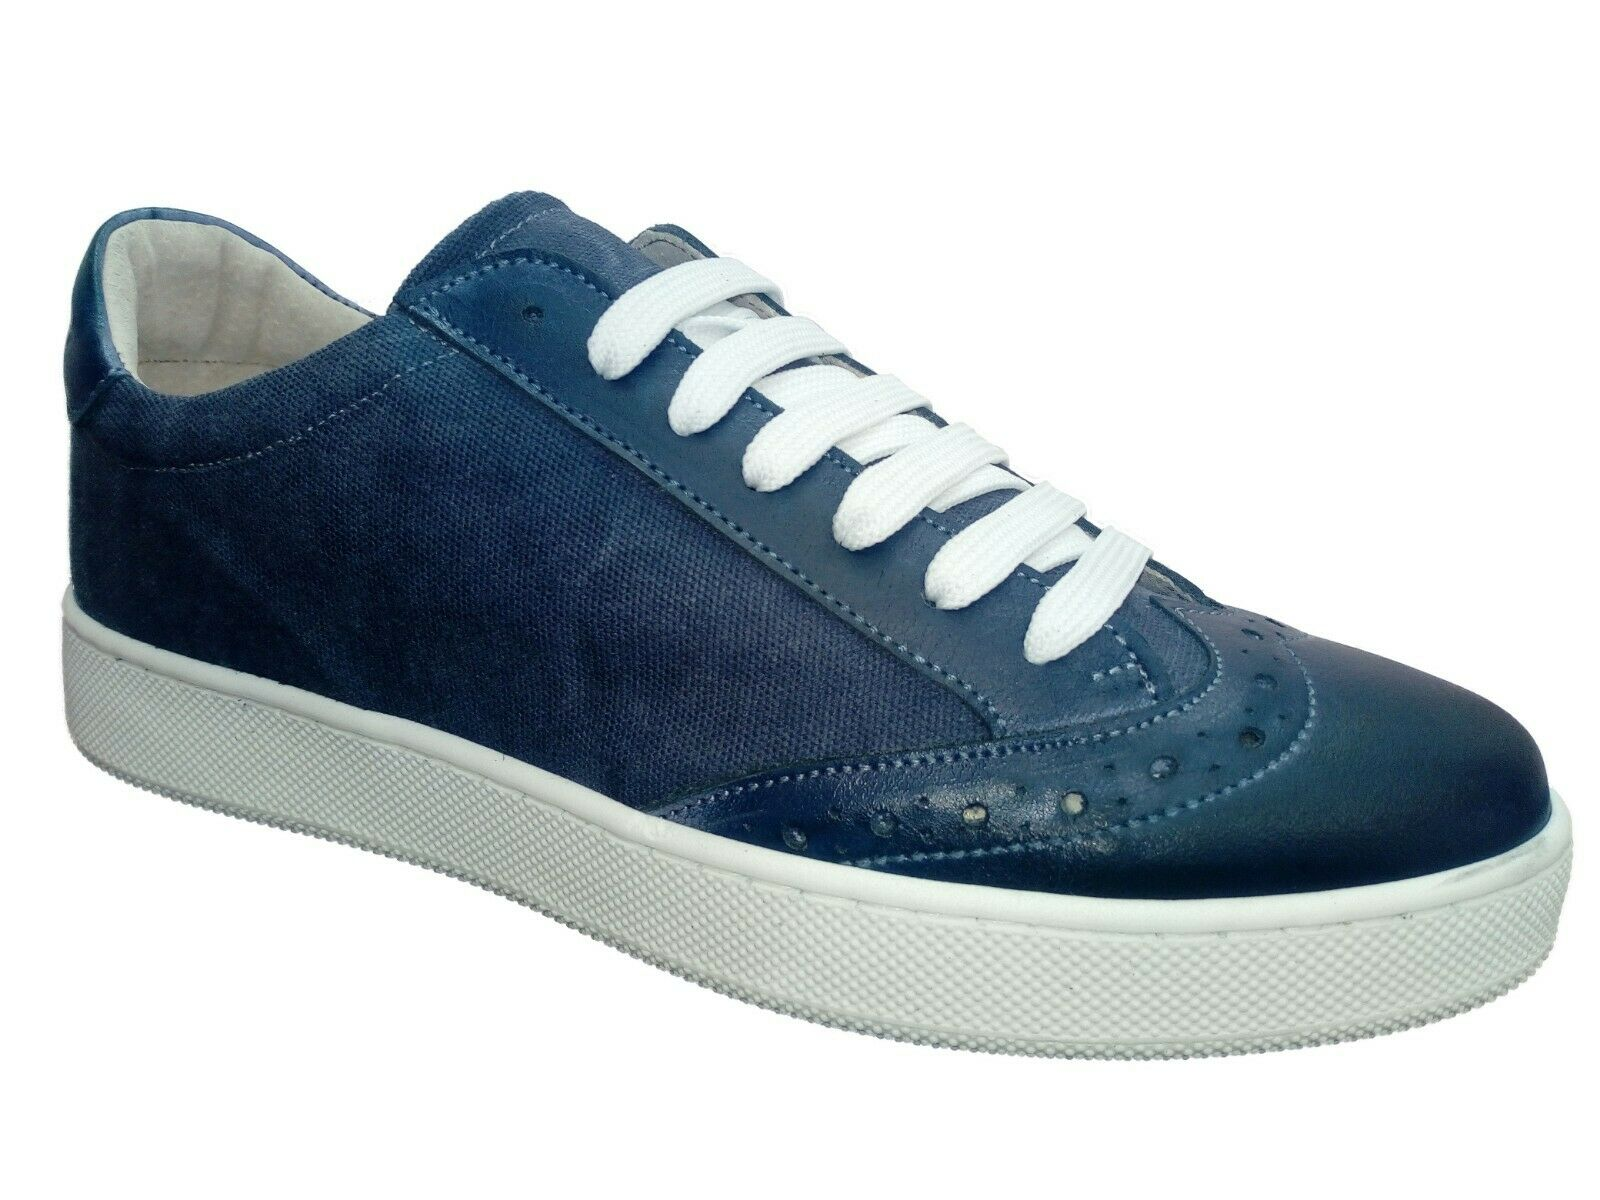 shoes da men Casual tg 43 WEENCHESTER made in  in tessuto e pelle blue